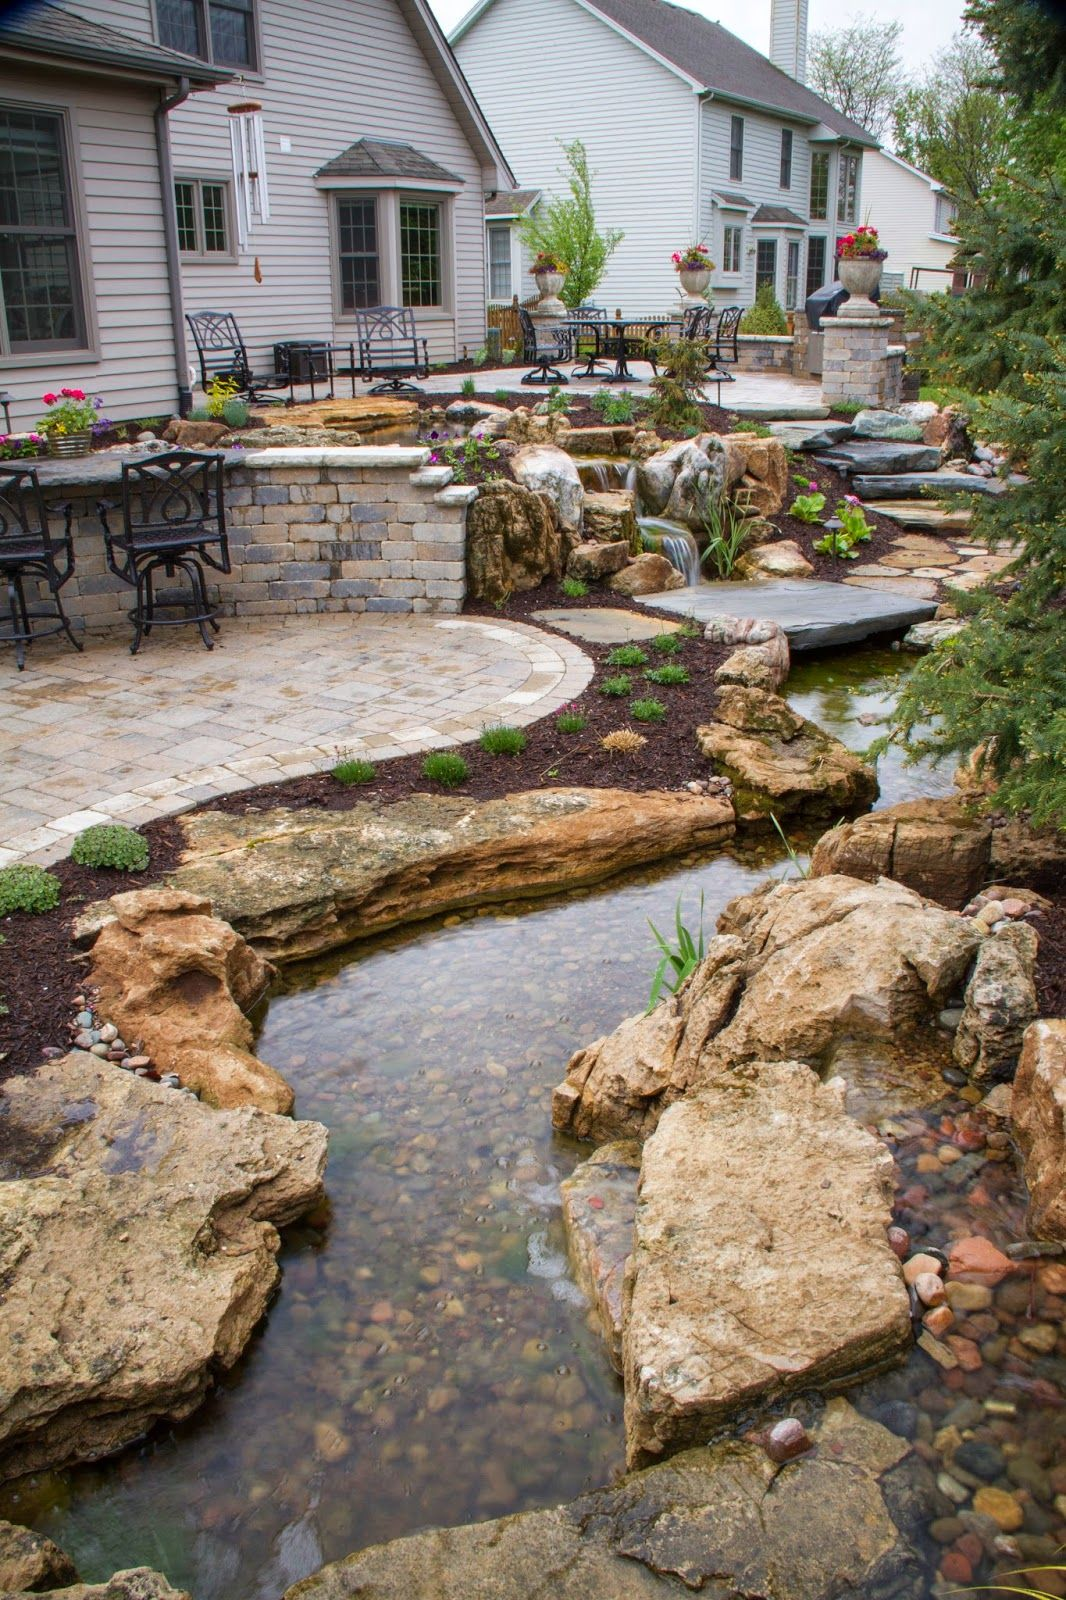 Who Doesn't Want the Perfect Backyard